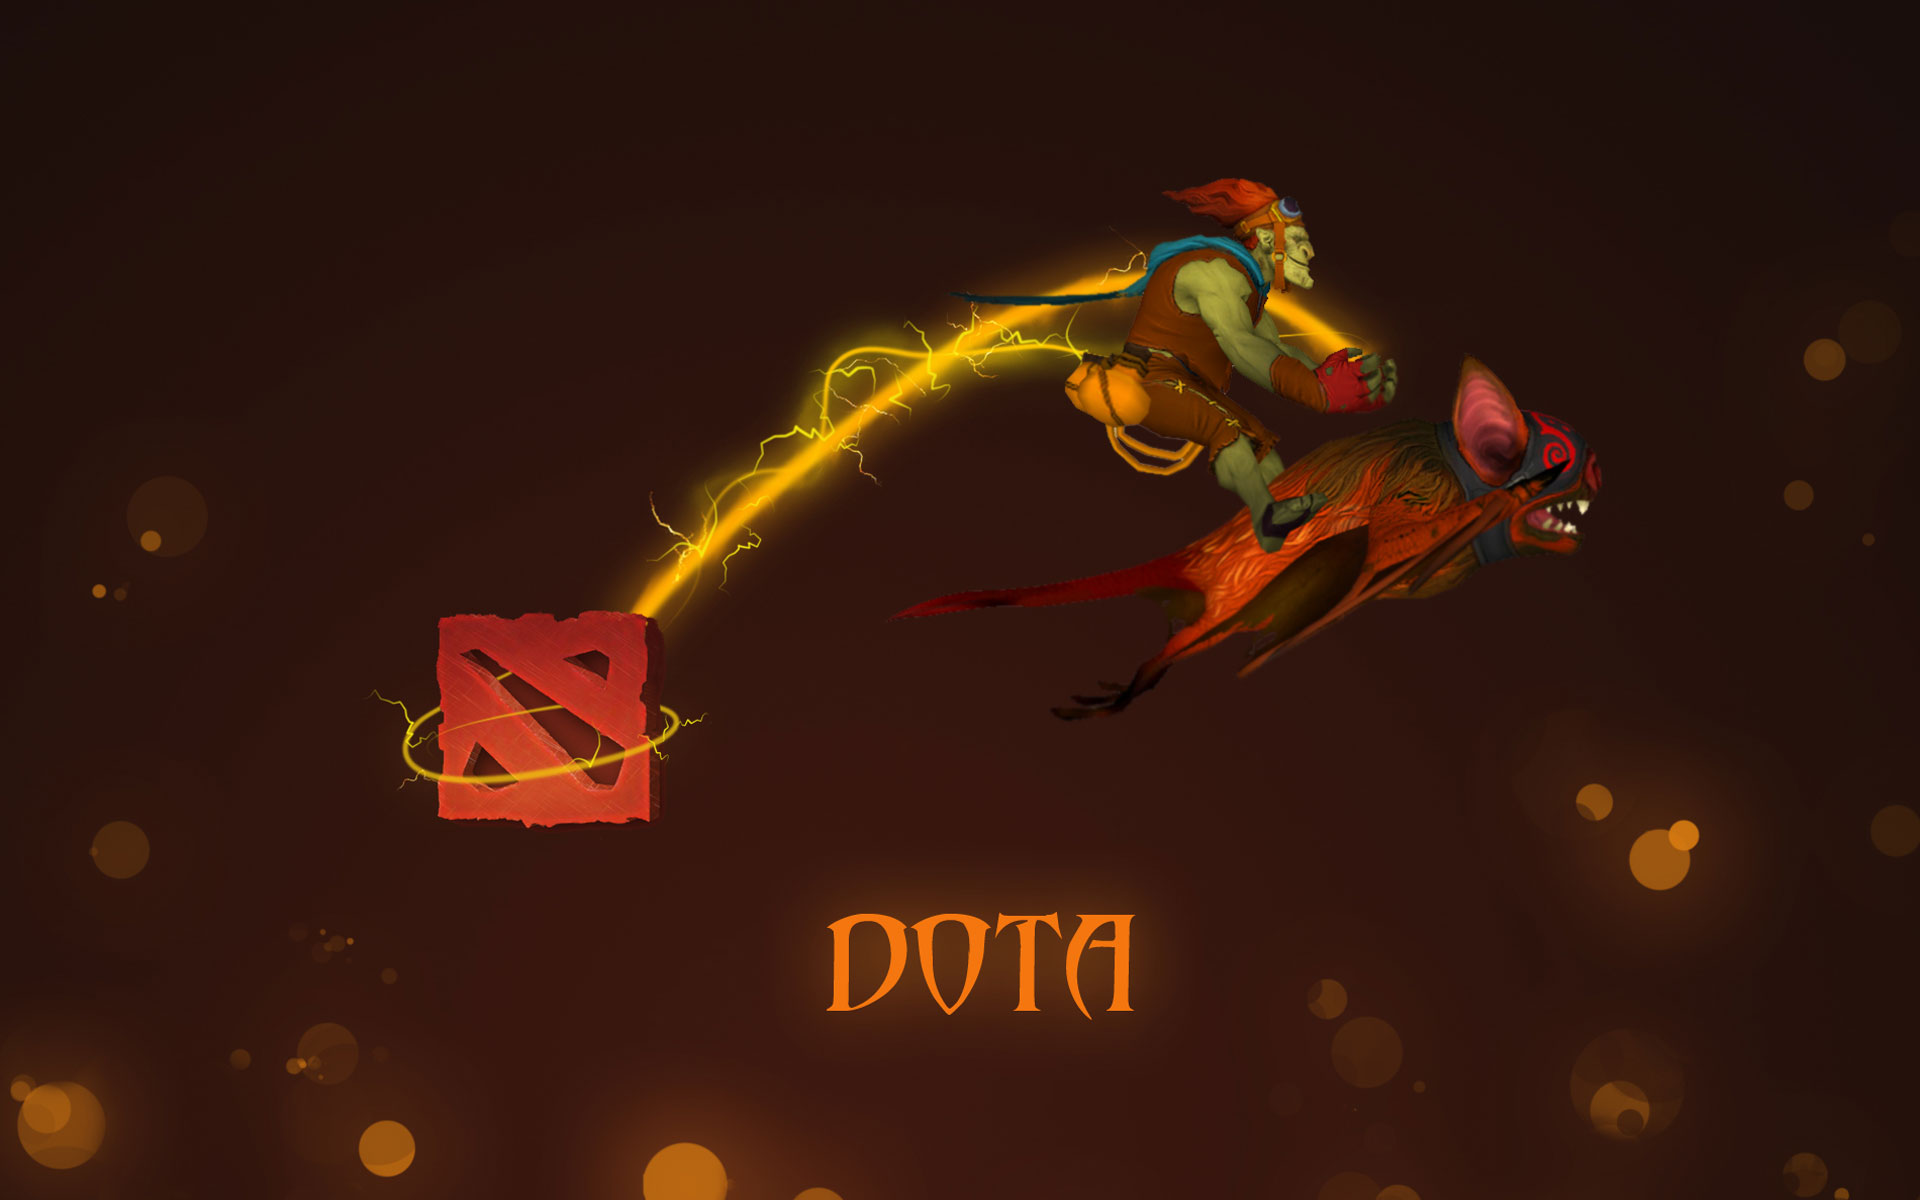 Dota 2 Wallpaper 14400 Hd Wallpapers in Games   Imagescicom 1920x1200